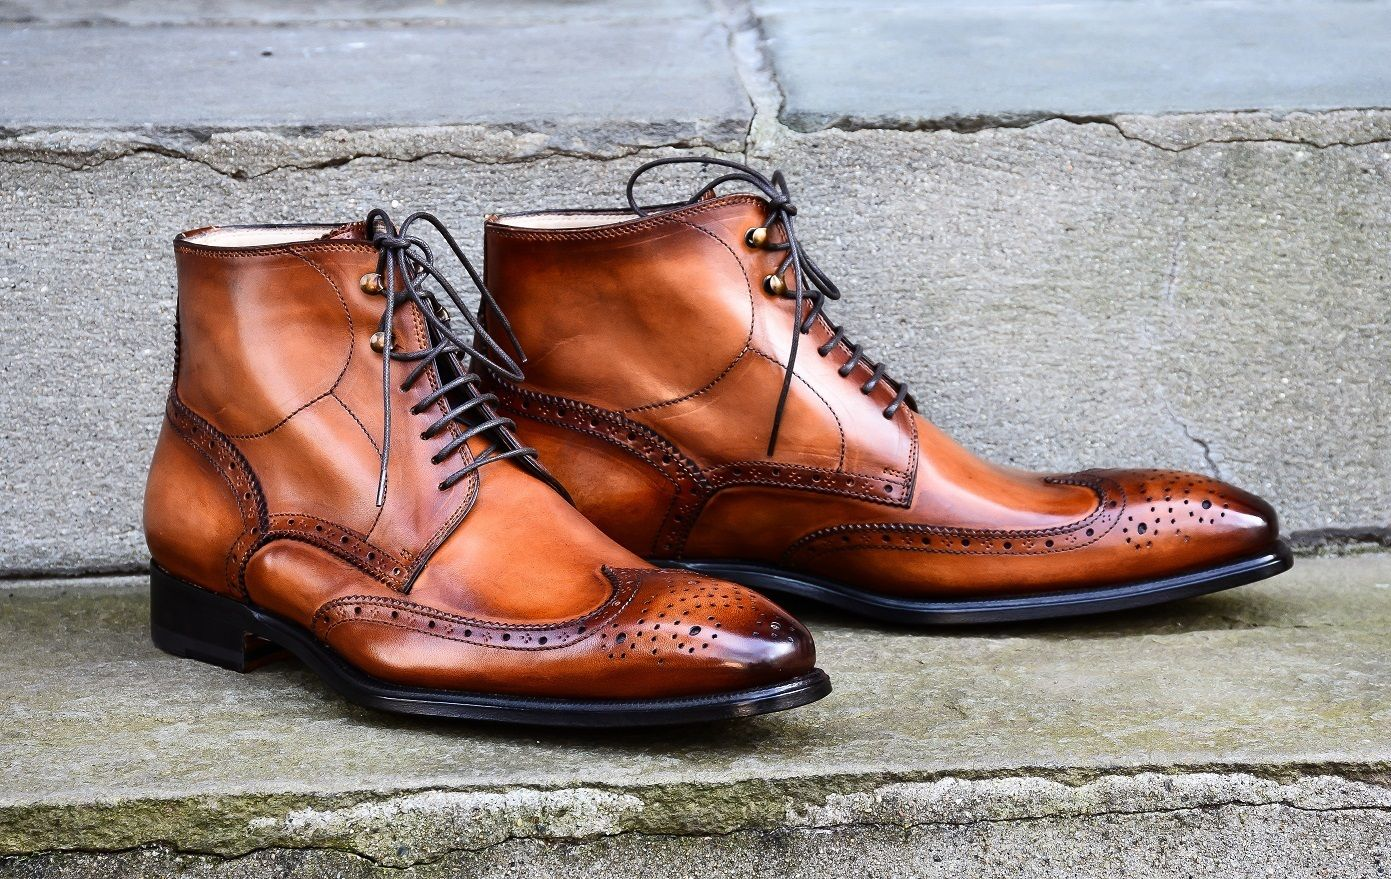 Classic Brogues Designer Leather boots